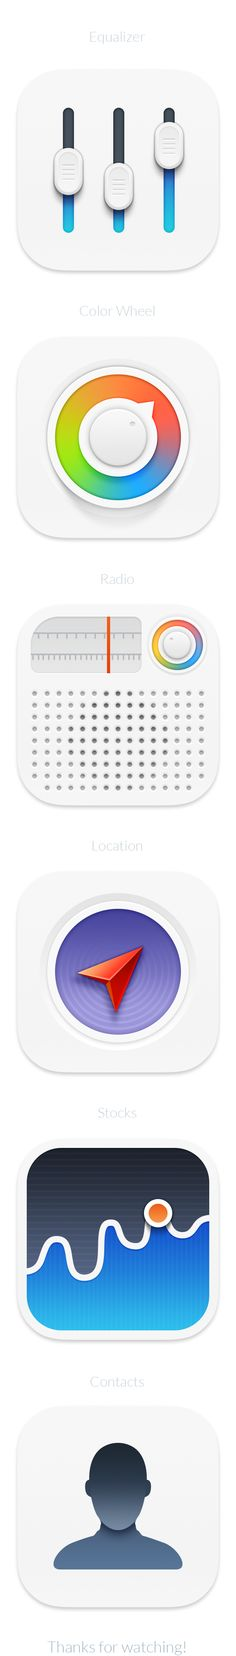 iOS 7 Minimanimal icons replacement by Jackie Tran Anh Design Ios, App Icon Design, Game Design, Ios 7 Icons, Ios App Icon, Wireframe, Launcher Icon, Mobile App Icon, Invention And Innovation